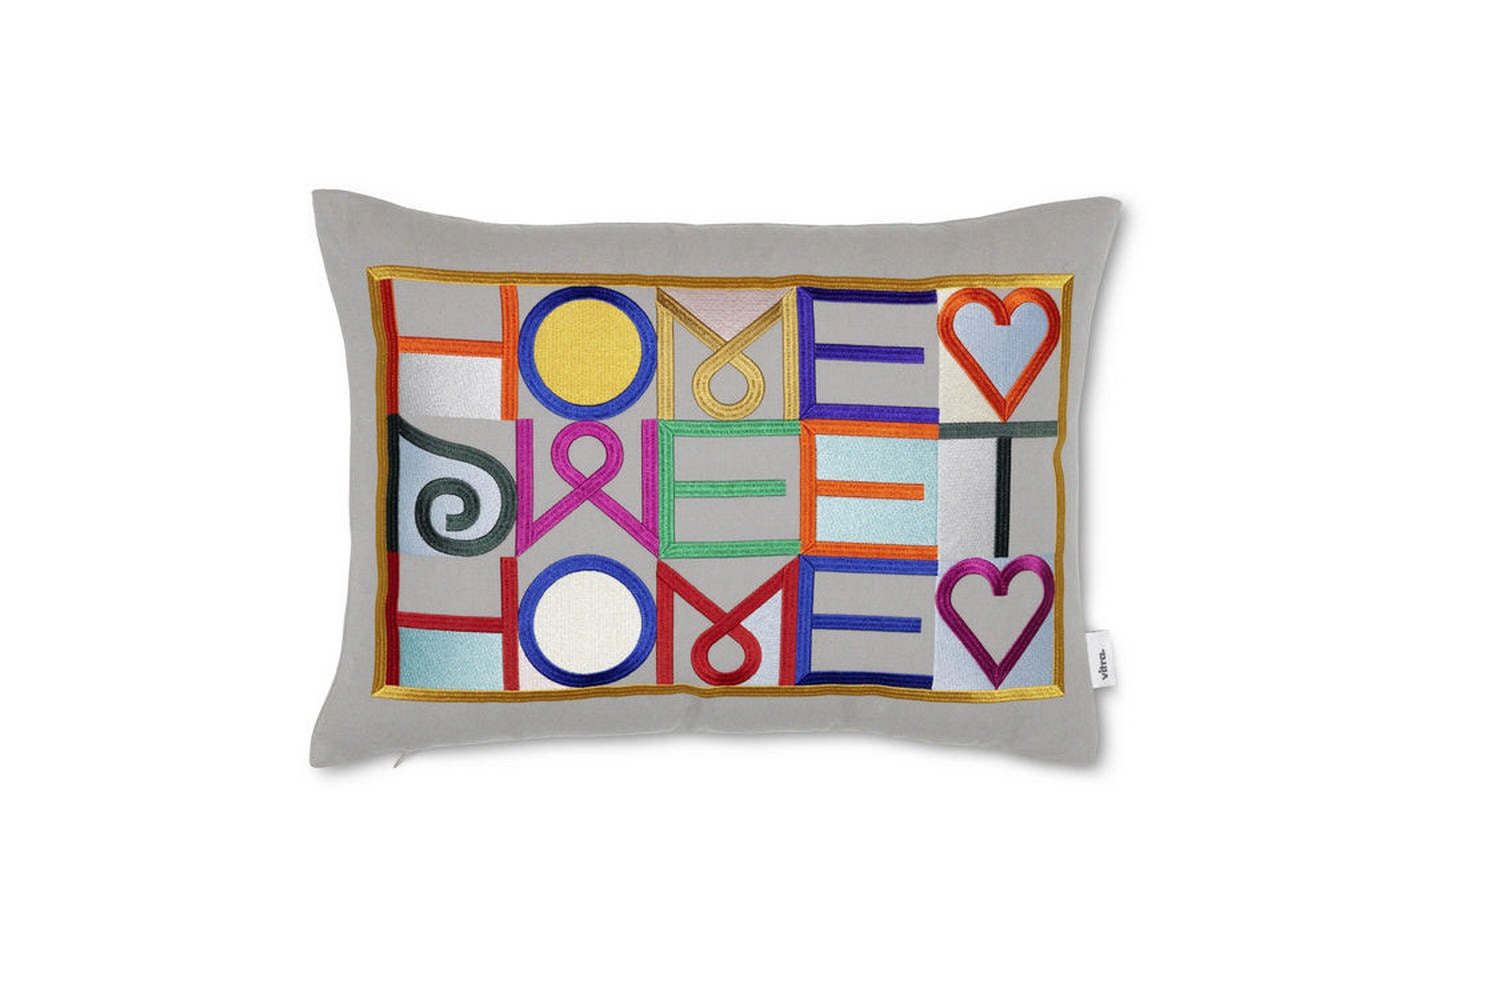 Embroidered Pillows by Alexander Girard for Vitra